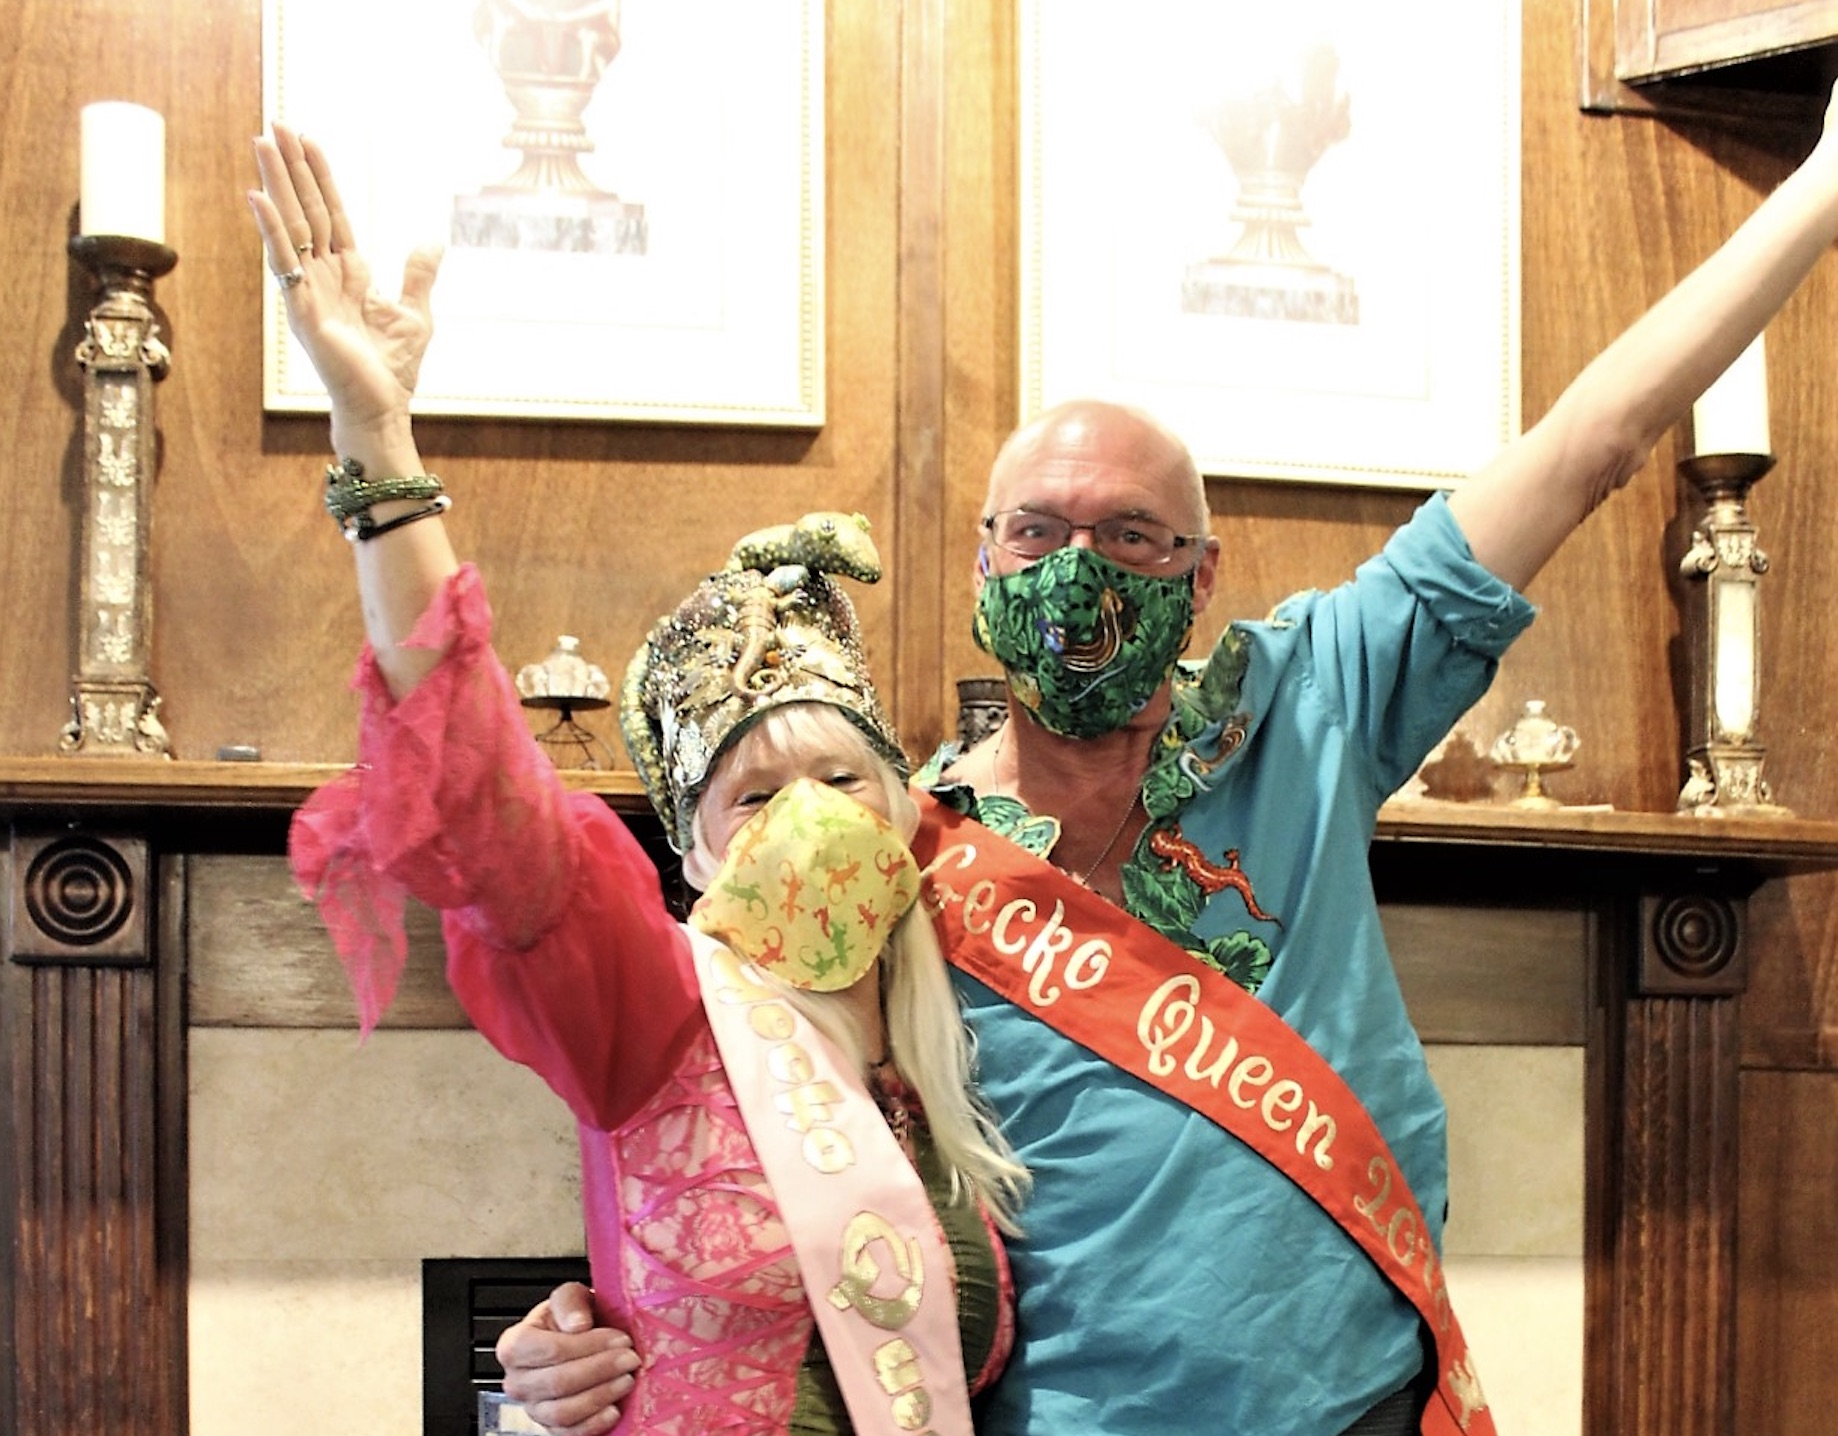 A man in a blue shirt and woman in a pink dress, both with face masks and sashes, pose with arms raised.